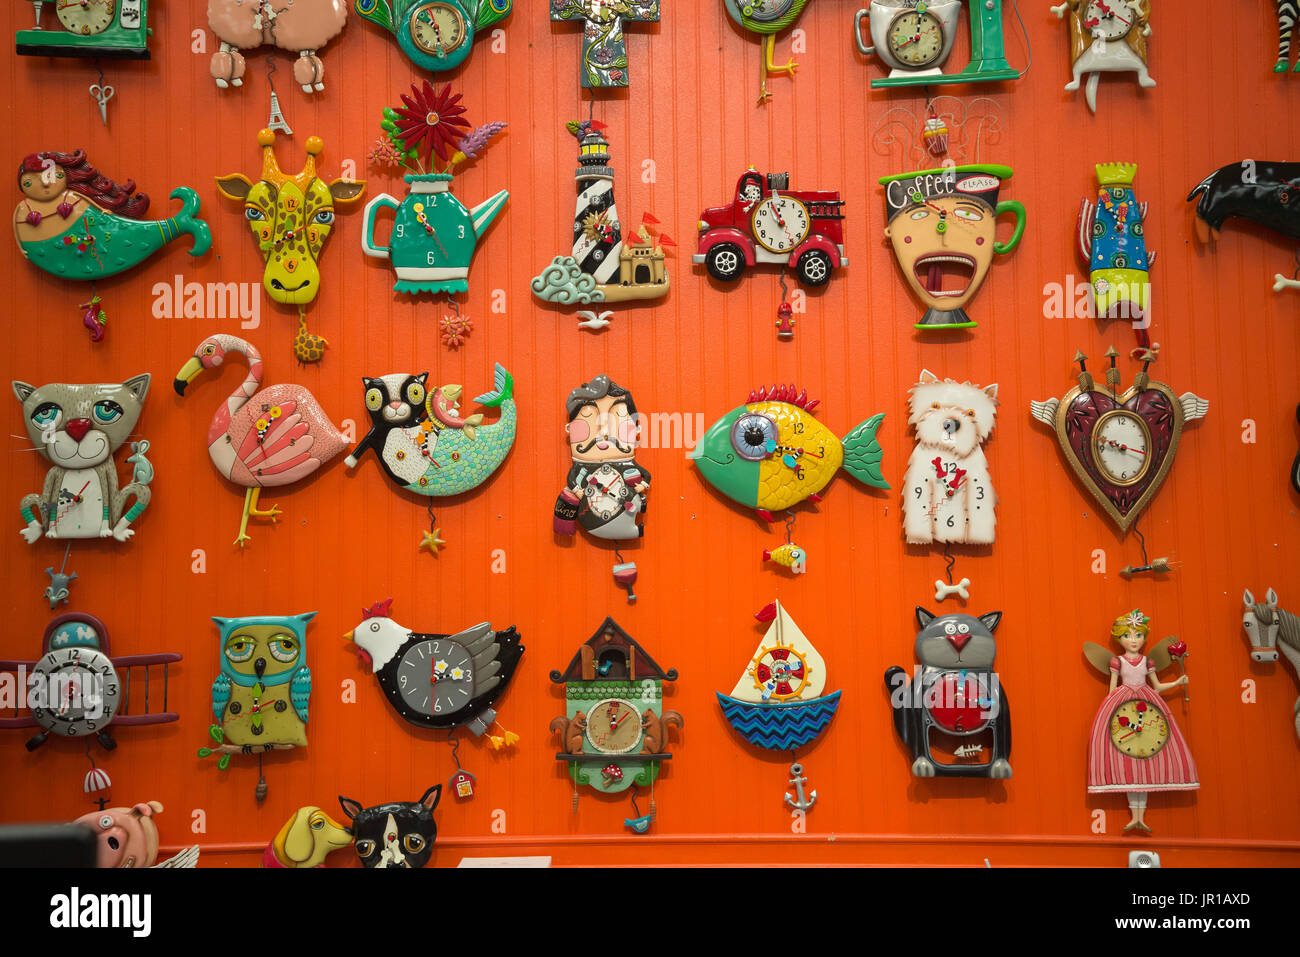 Decorative and quirky clocks for sale. - Stock Image